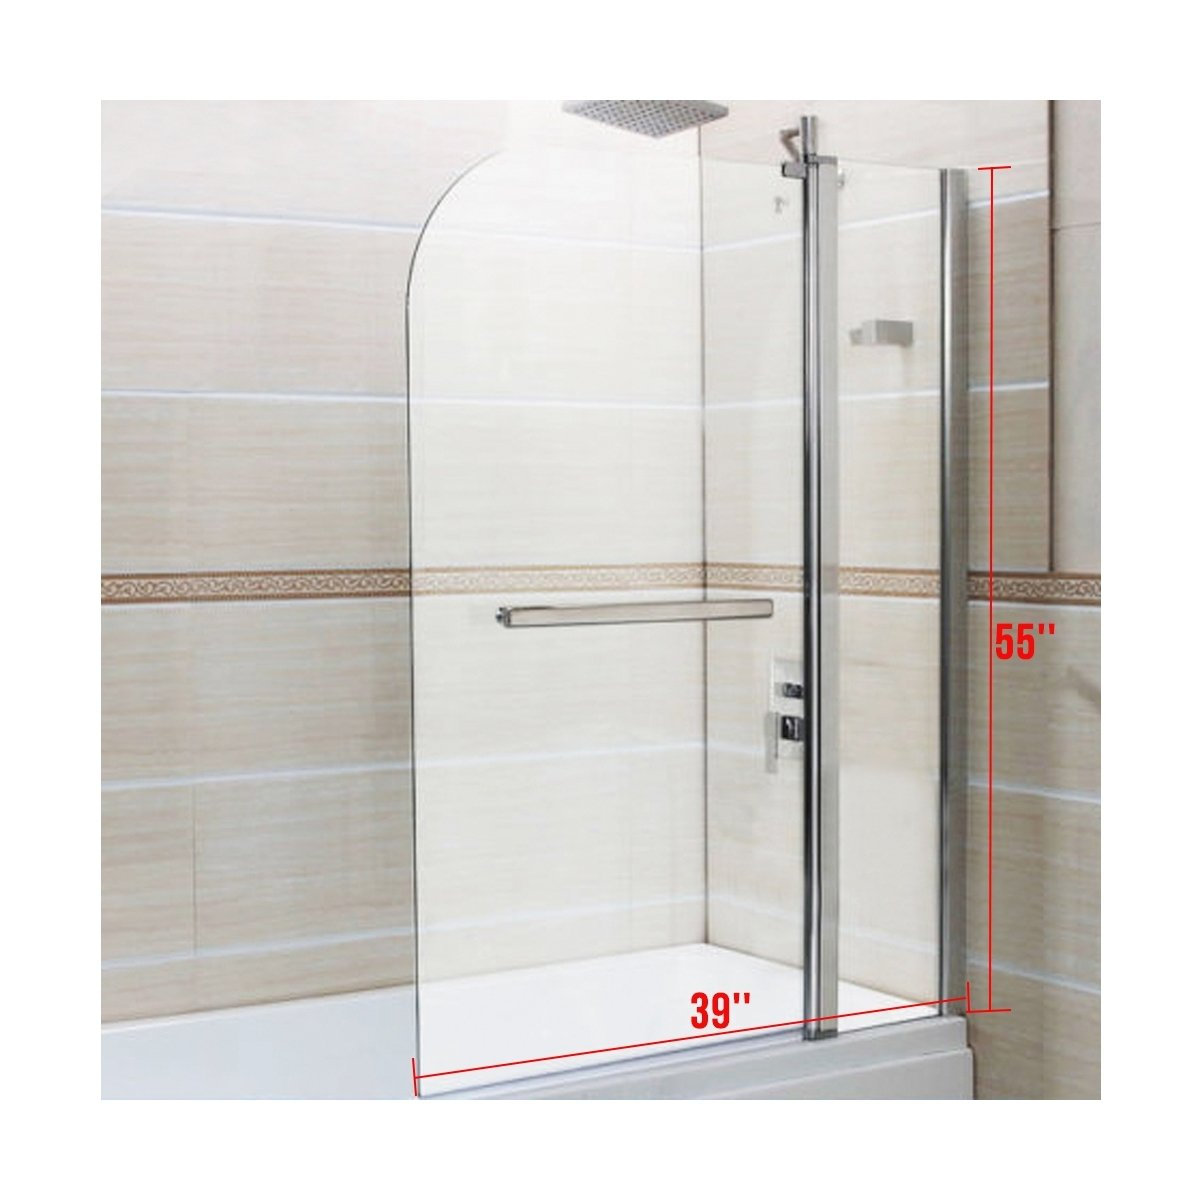 Clear glass 55 inch x39 inch pivot radius framed 14 inch bath tub shower door chrome finish by beautifulwoman